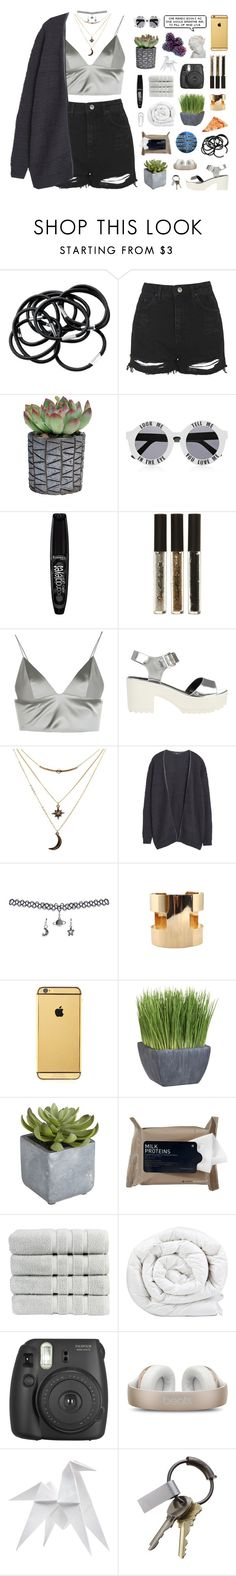 """""""DON'T KNOW HOW TO LOVE ME WHEN YOU'RE SOBER"""" by soundlxss ❤ liked on Polyvore featuring H&M, Topshop, House of Holland, Rimmel, Miss Selfridge, T By Alexander Wang, River Island, Charlotte Russe, MANGO and Wet Seal"""